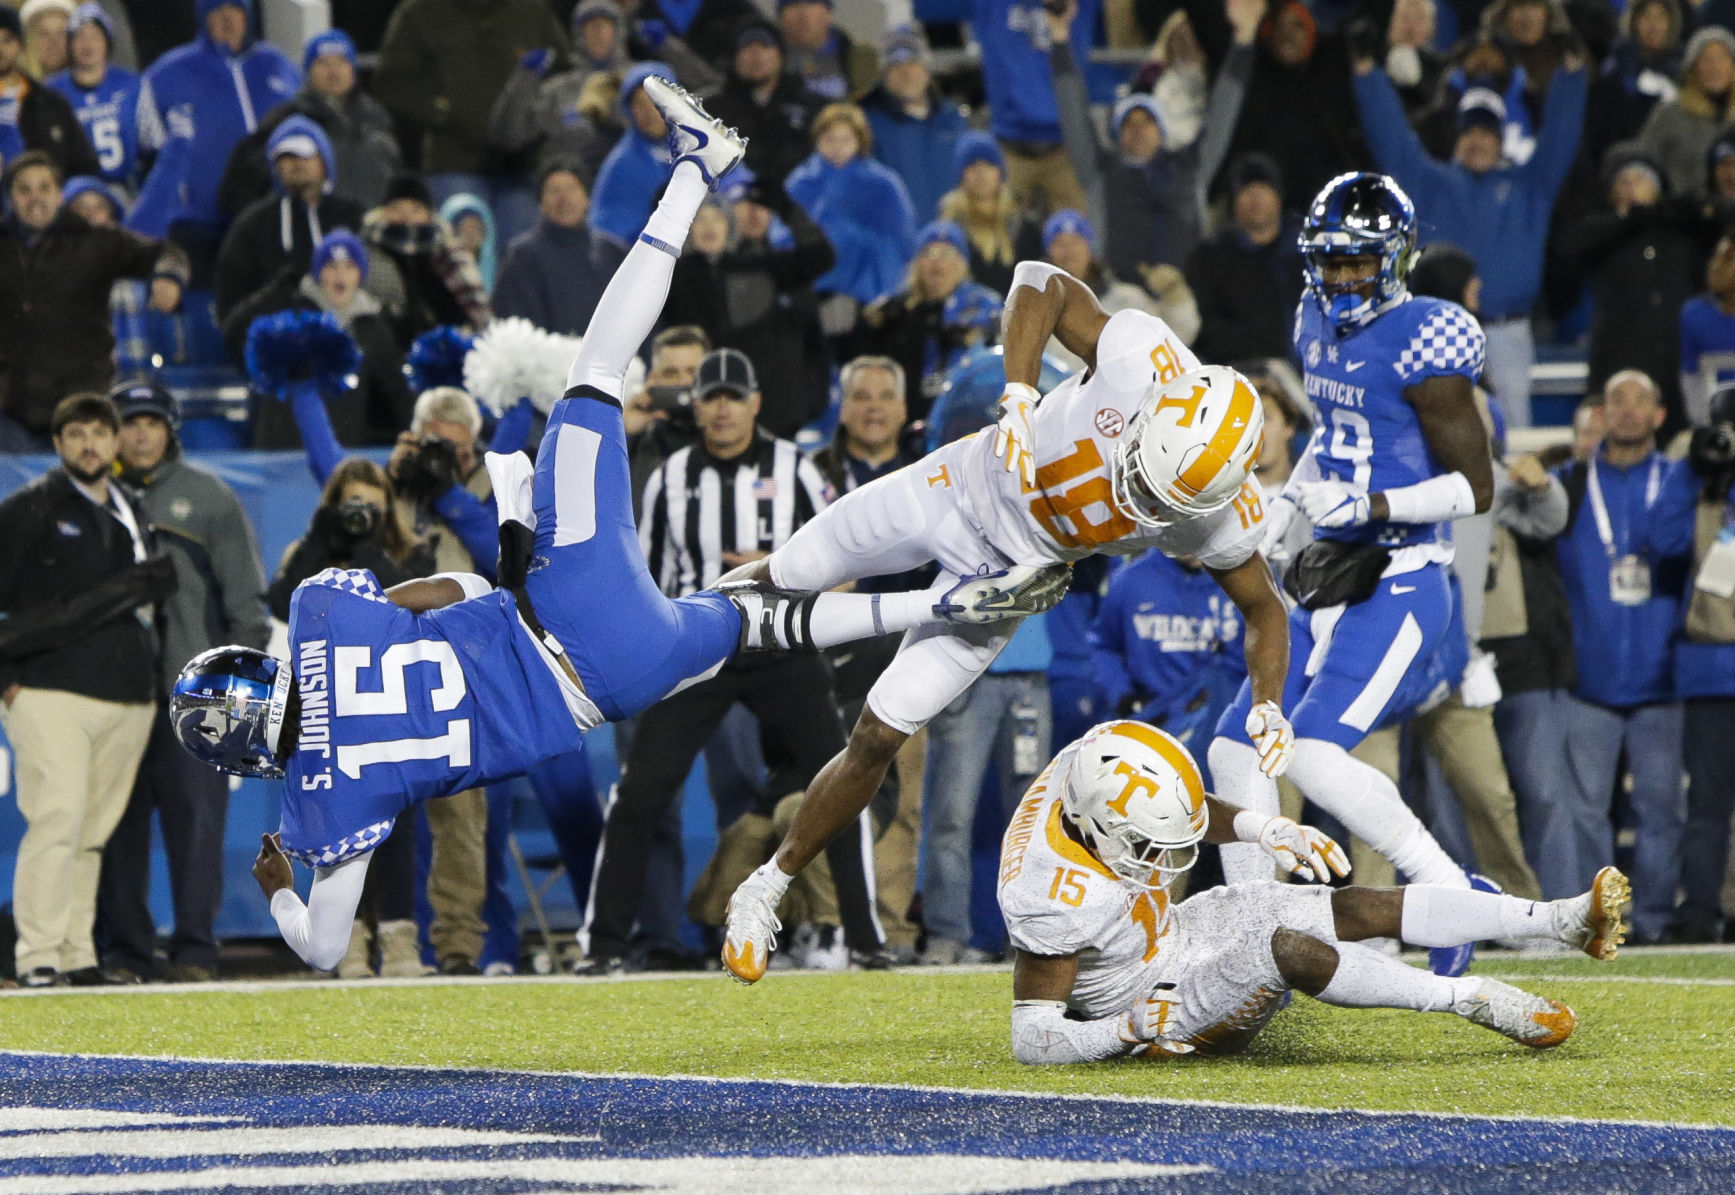 Tennessee Kentucky Football UK FOOTBALL Johnson Wildcats